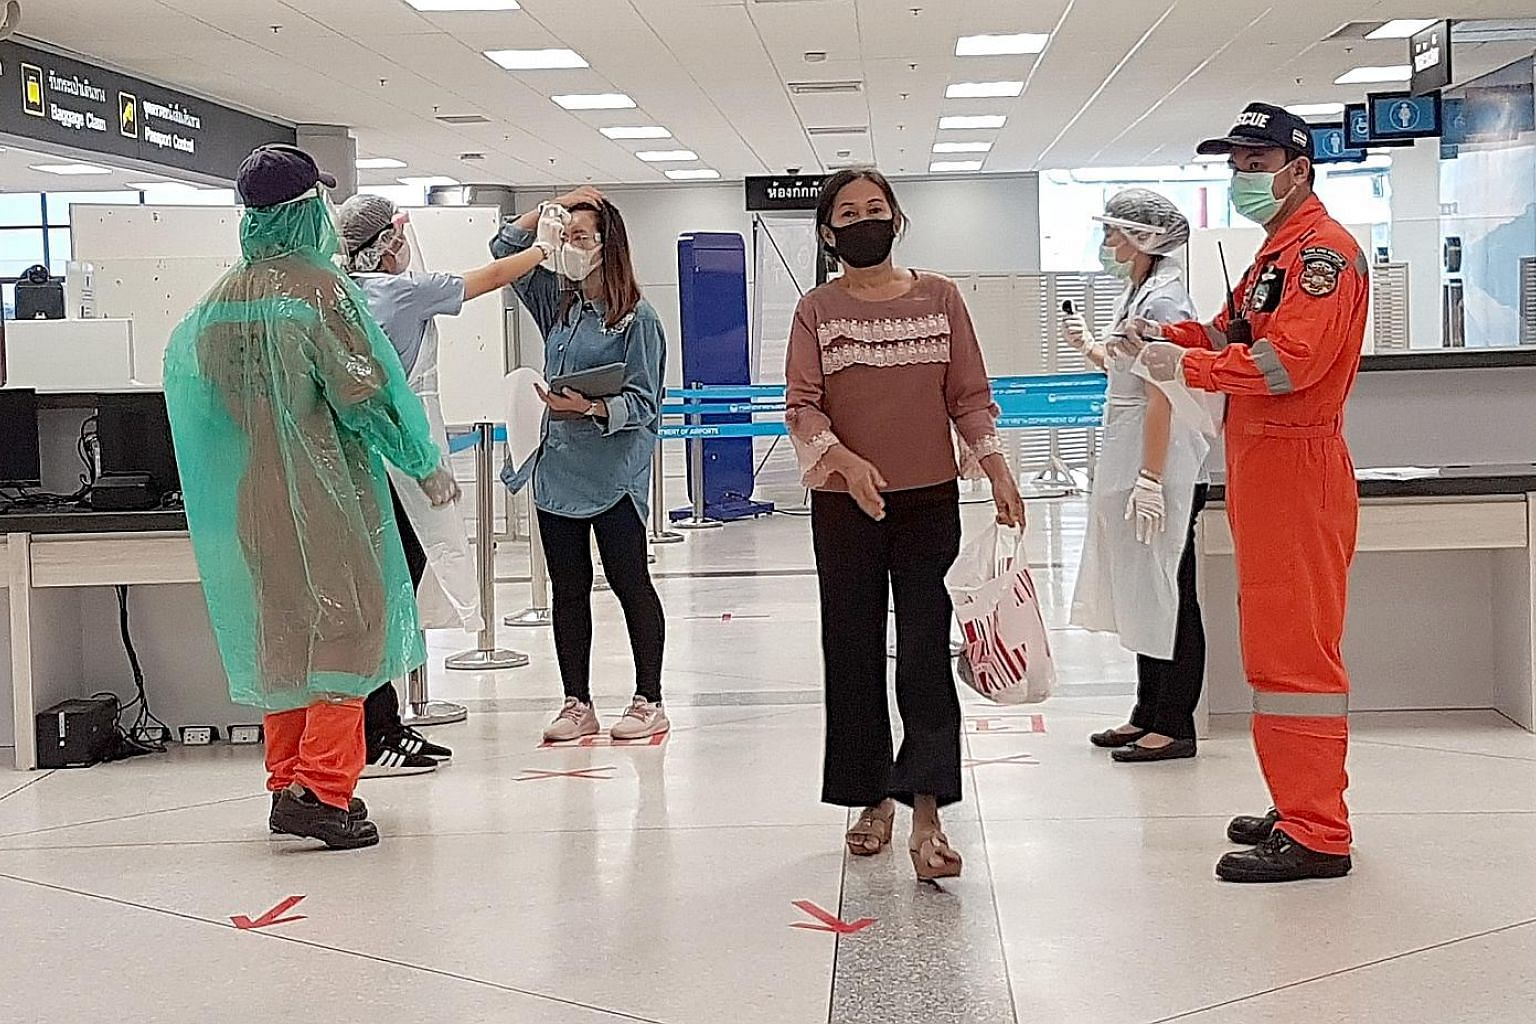 ST reporter Tan Hui Yee on an almost empty flight from the Thai capital Bangkok to the north-eastern province of Ubon Ratchathani. From left: An attendant on the one-hour flight from Bangkok to Ubon Ratchathani wearing disposable plastic overalls on